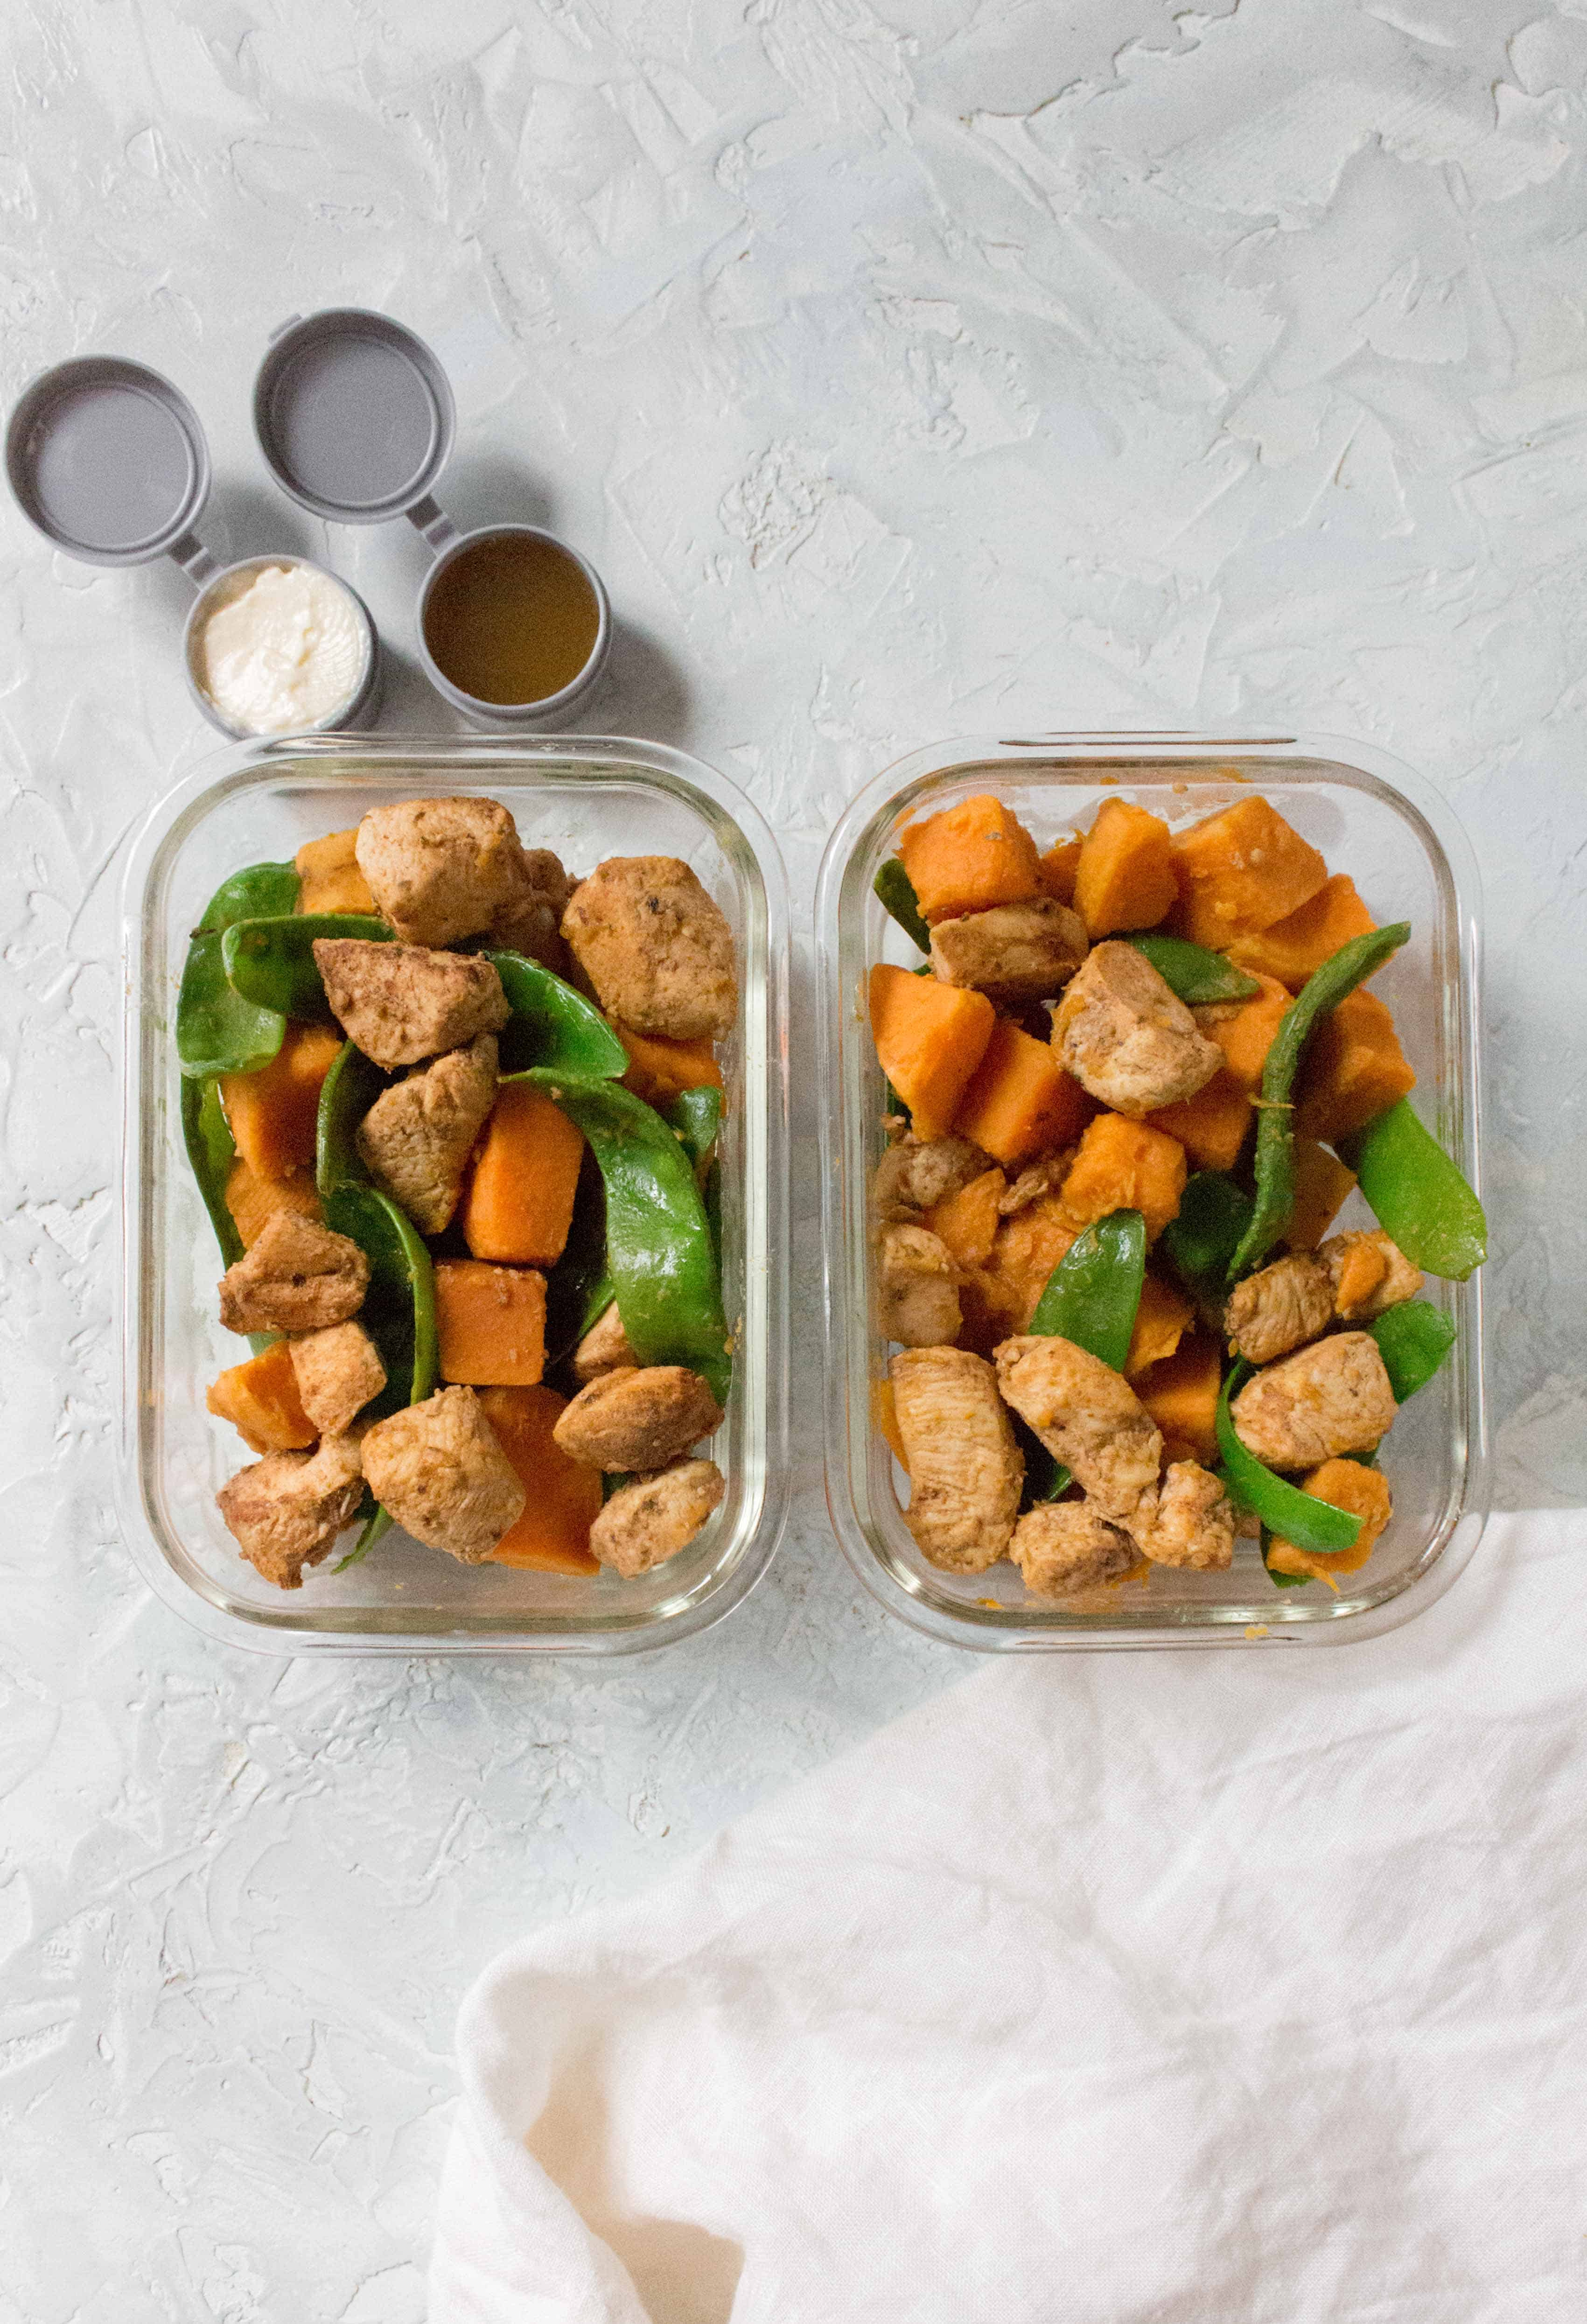 chicken and vegetable meal prep made in one pot